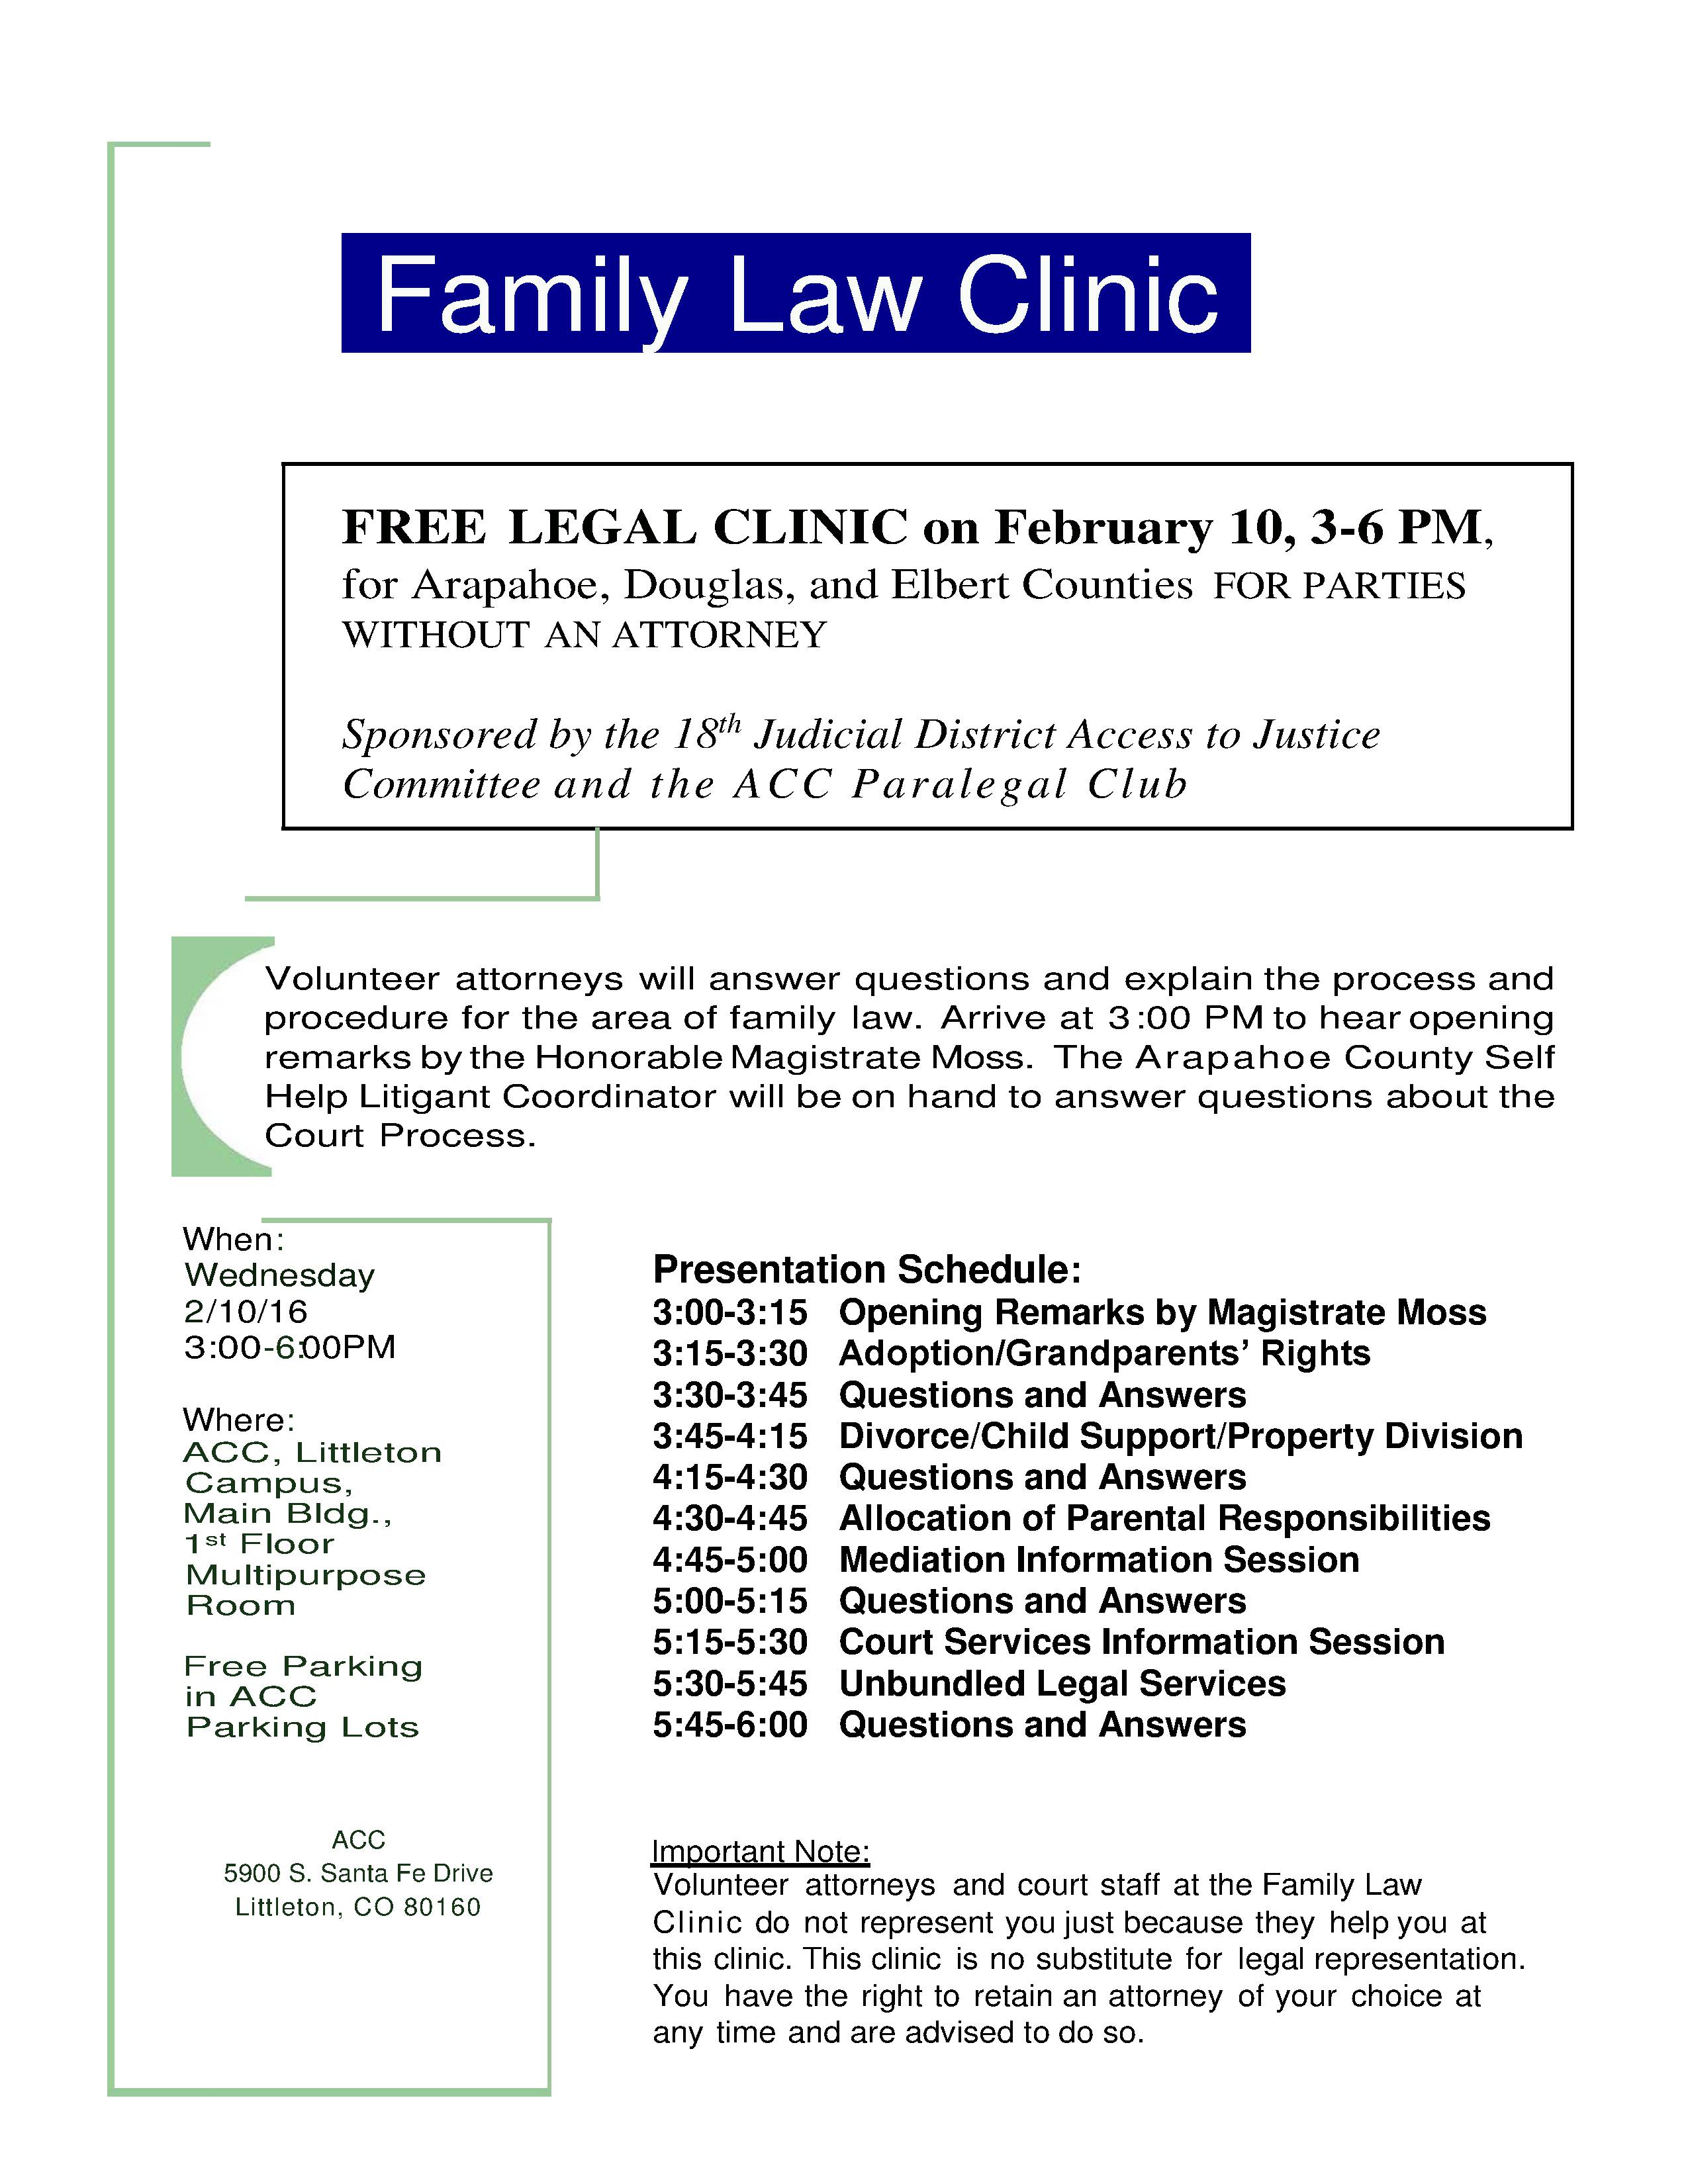 Free Family Law Clinic in Littleton on Feb. 10th